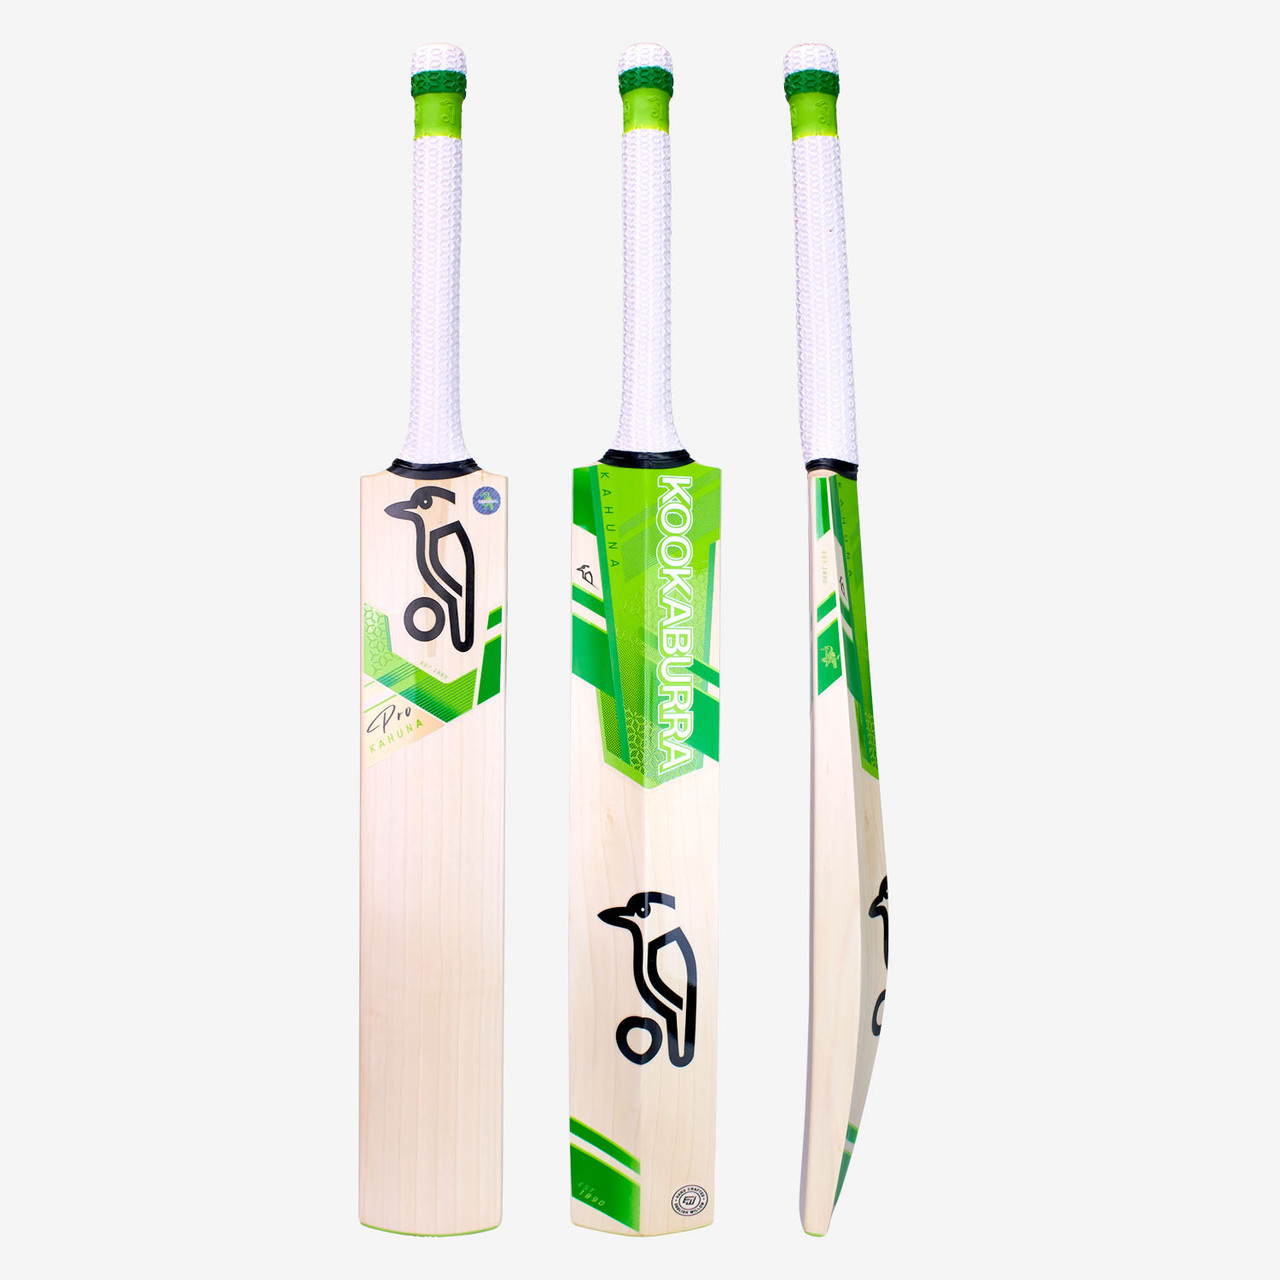 Kookaburra Kahuna Cricket Bat 2021